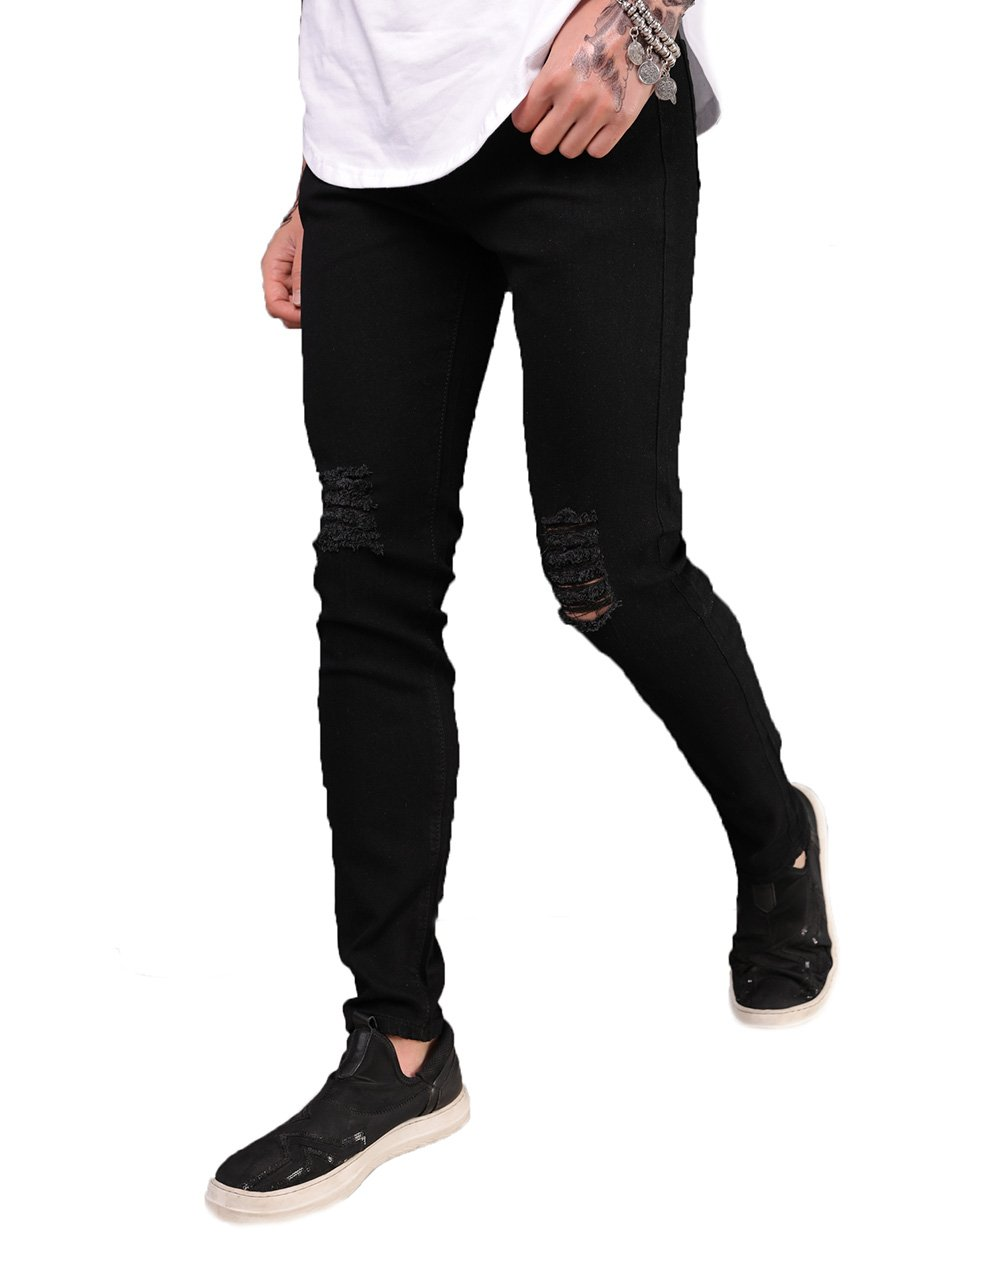 XARAZA Men's Ripped Distressed Skinny Summer Jeans Stretchy Slim Fit Pencil Pants (US 32, Black)